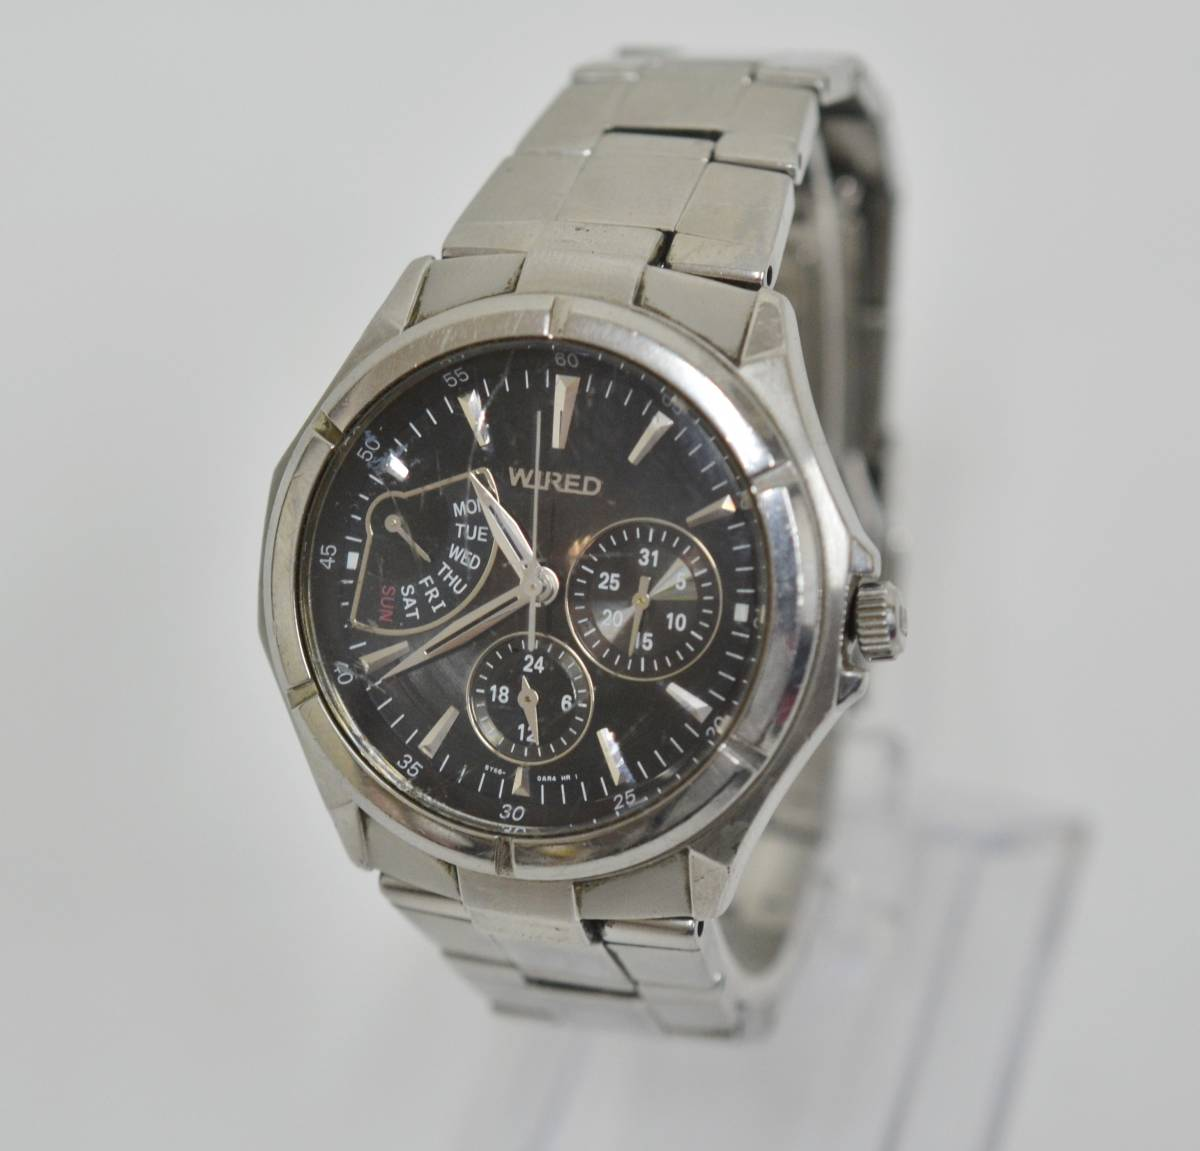 ◇◆SEIKO WIRED ワイアード クロノ 腕時計 7N0535 ジャンク